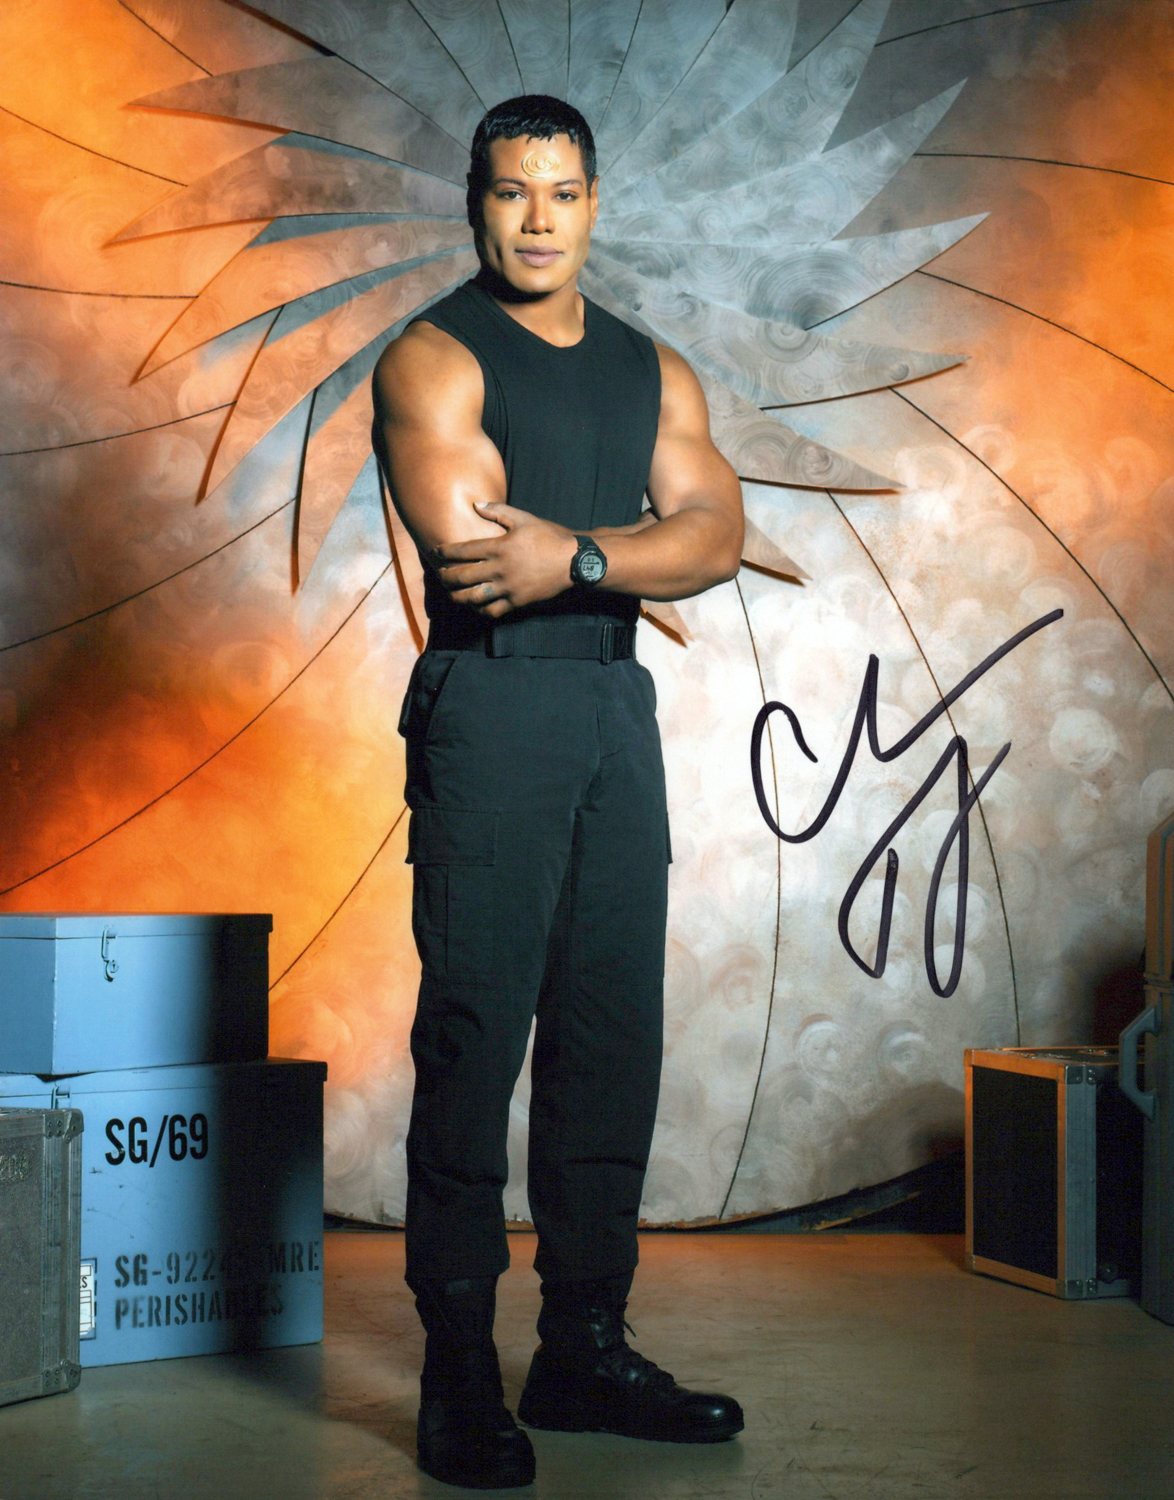 Chris Judge Original Autogramm auf Foto 20x25cm - Stargate